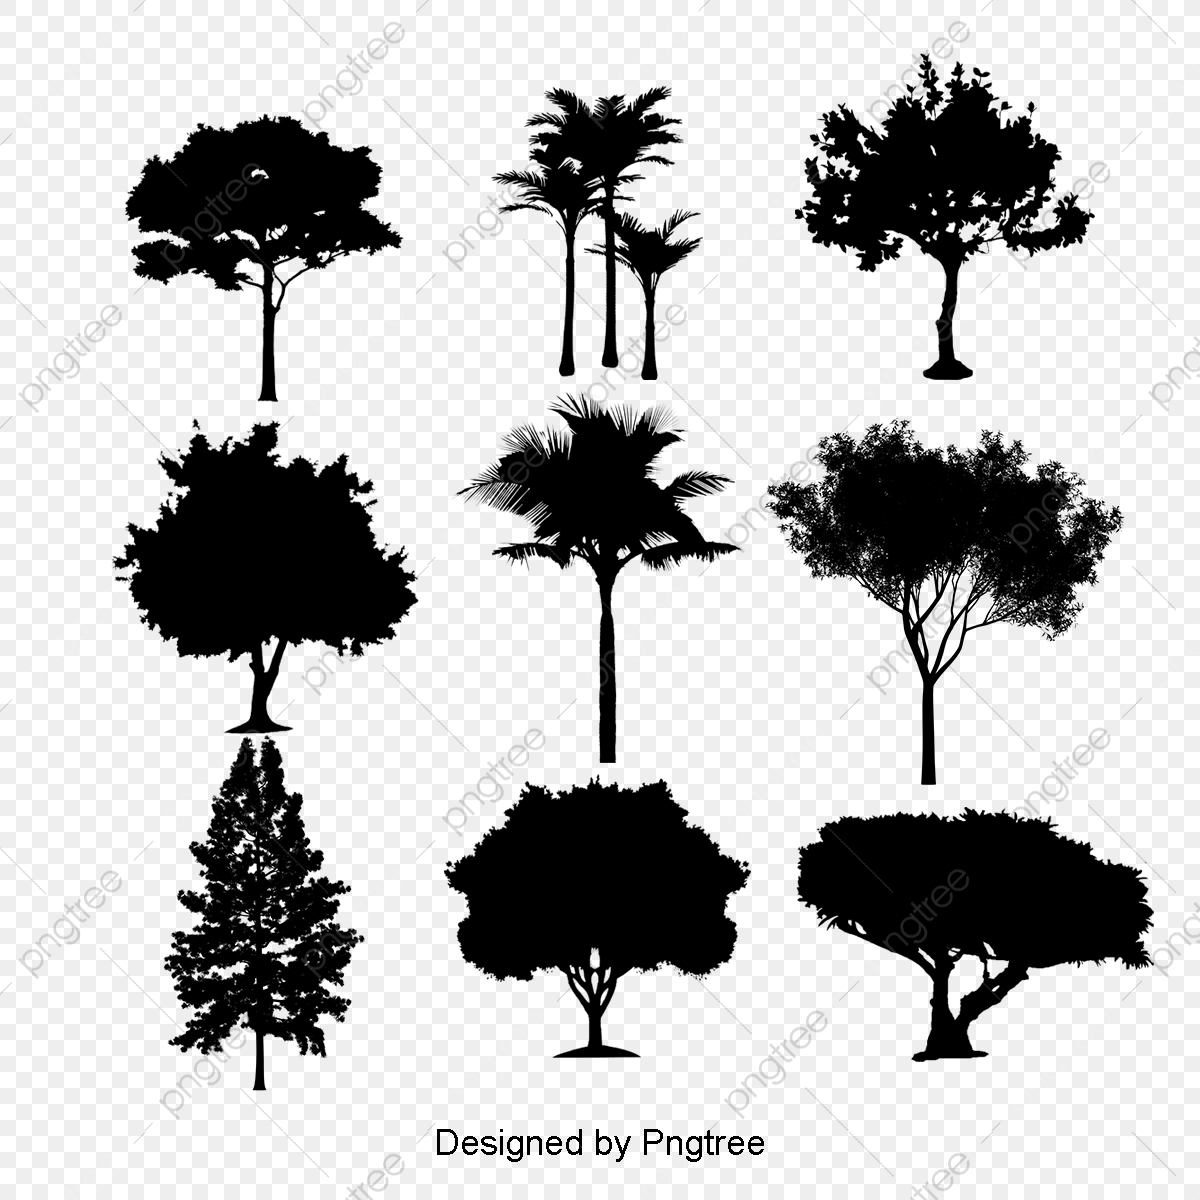 Tree Silhouette, Black, Trees PNG Transparent Clipart Image.